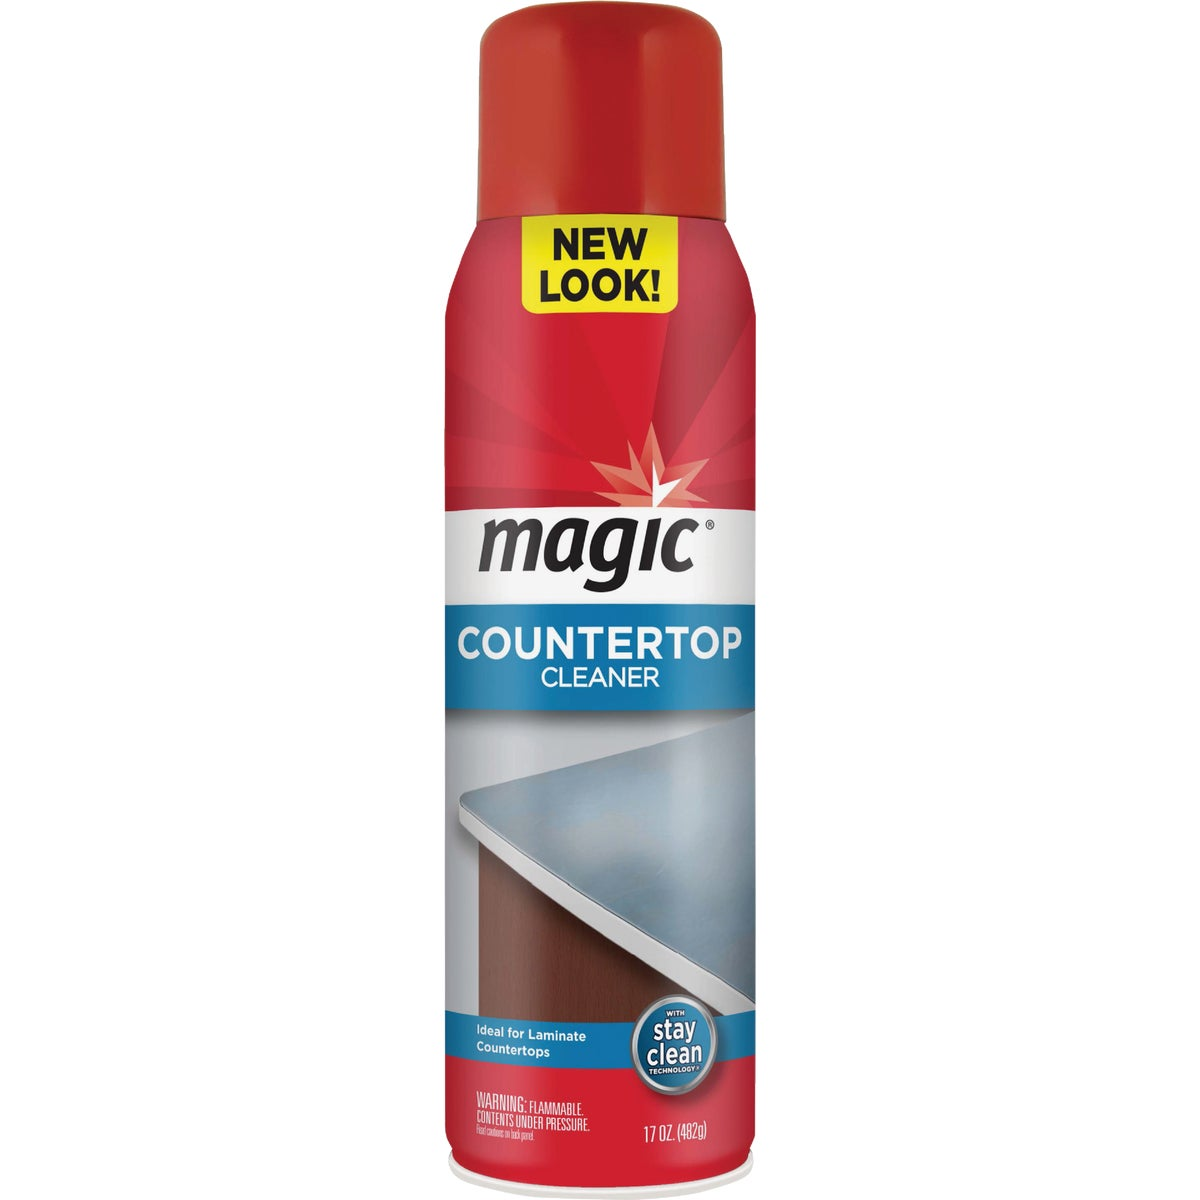 17OZ COUNTERTOP CLEANER - 1862 by Magic Ntrl Magic Sci